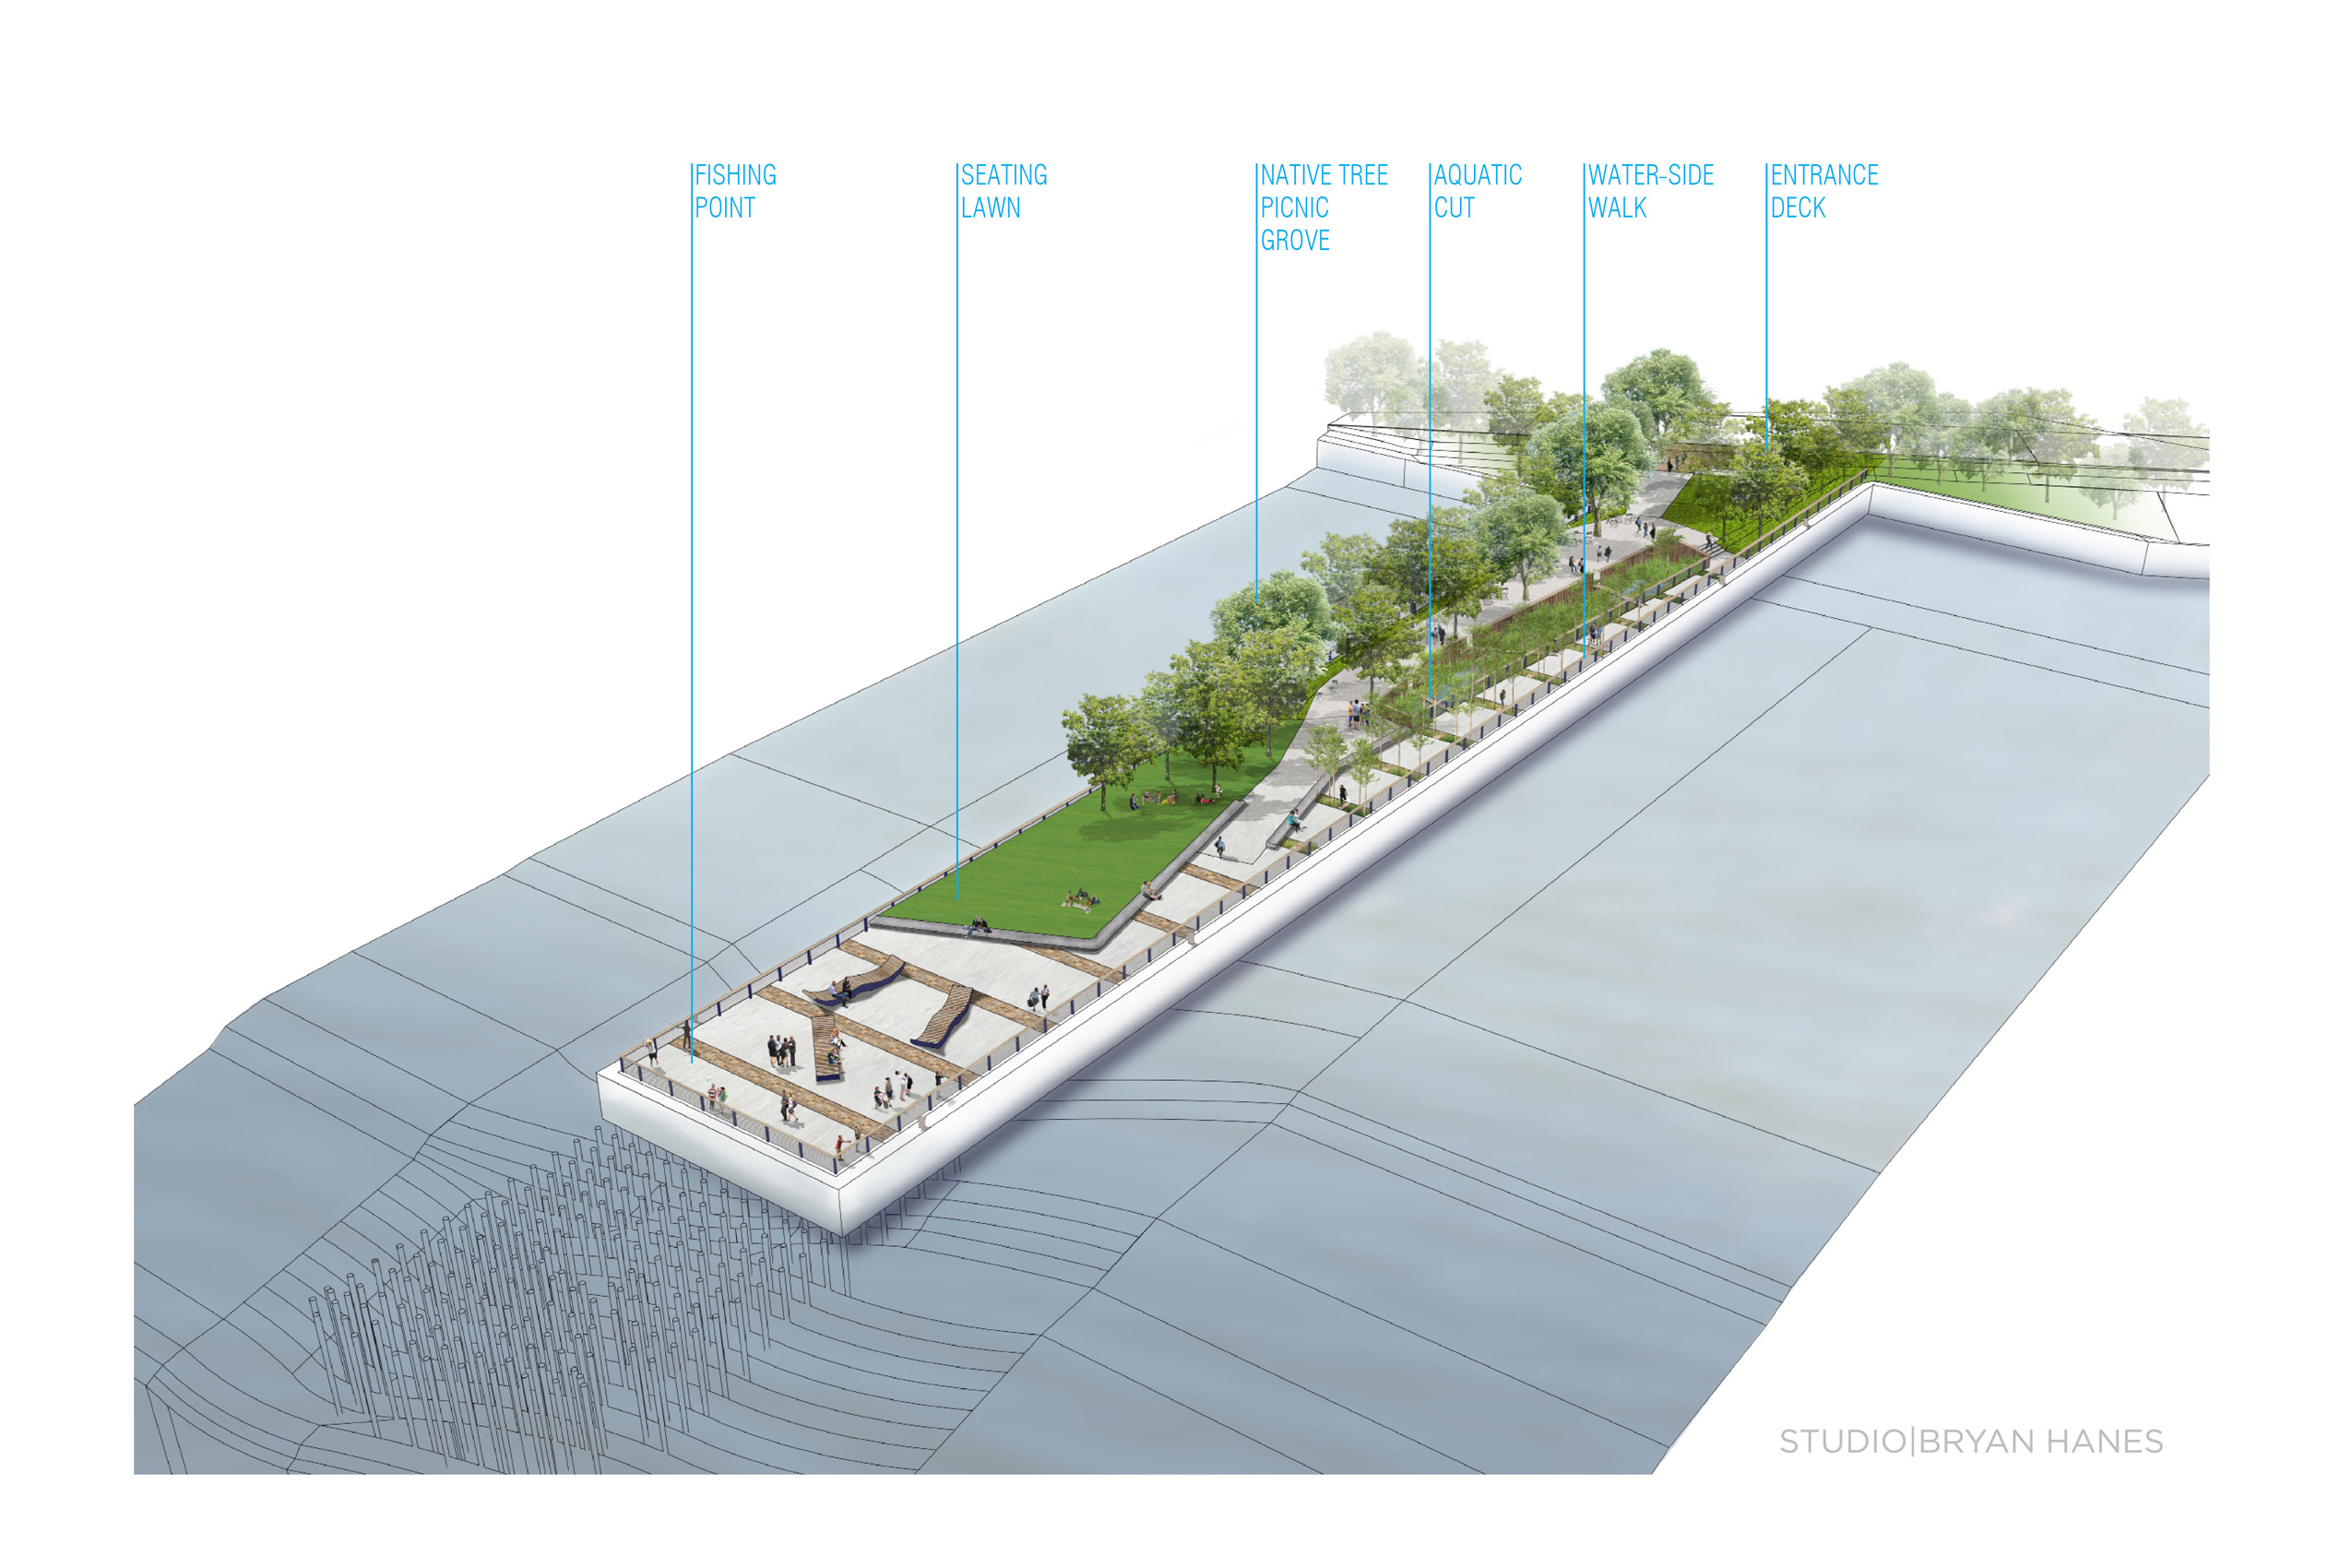 Pier 68 design diagram | Studio Bryan Hanes